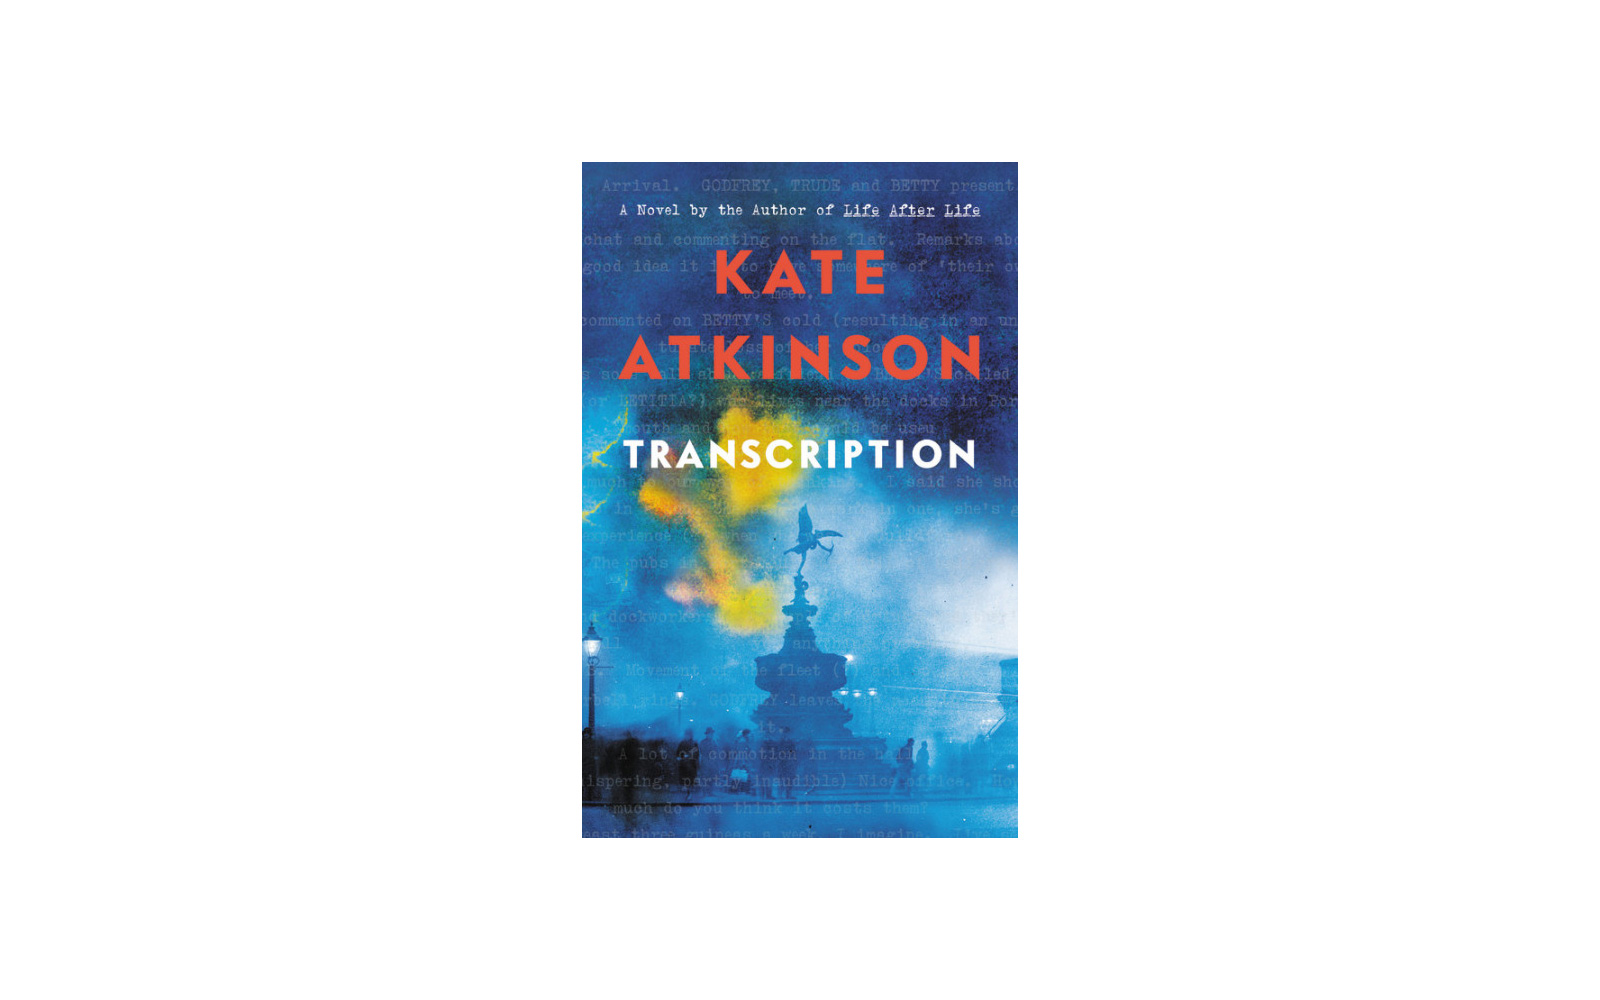 Best Books 2018 Transcription, by Kate Atkinson